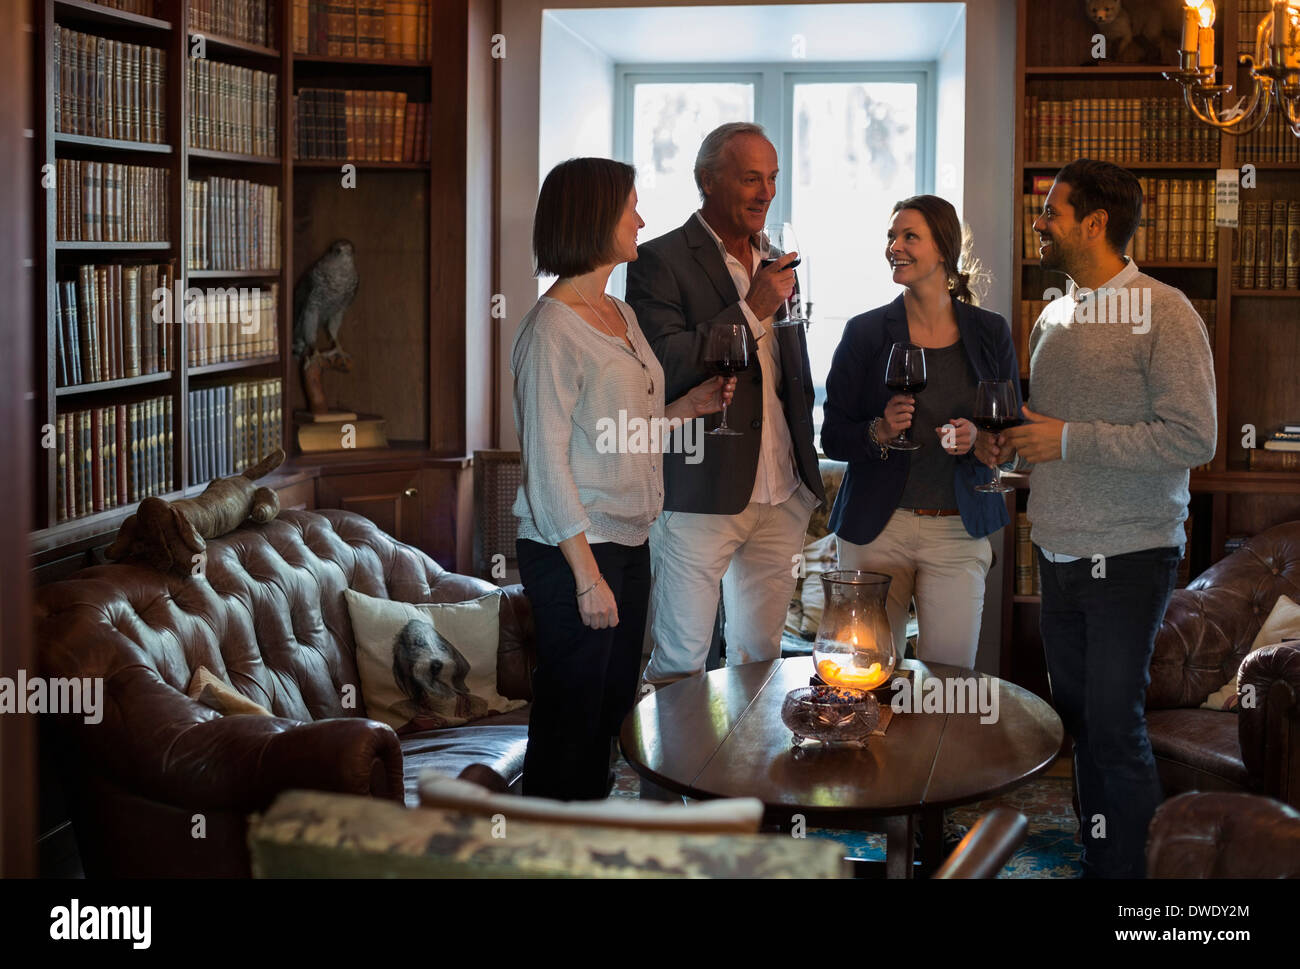 Business people with wineglasses spending leisure time at restaurant lobby - Stock Image